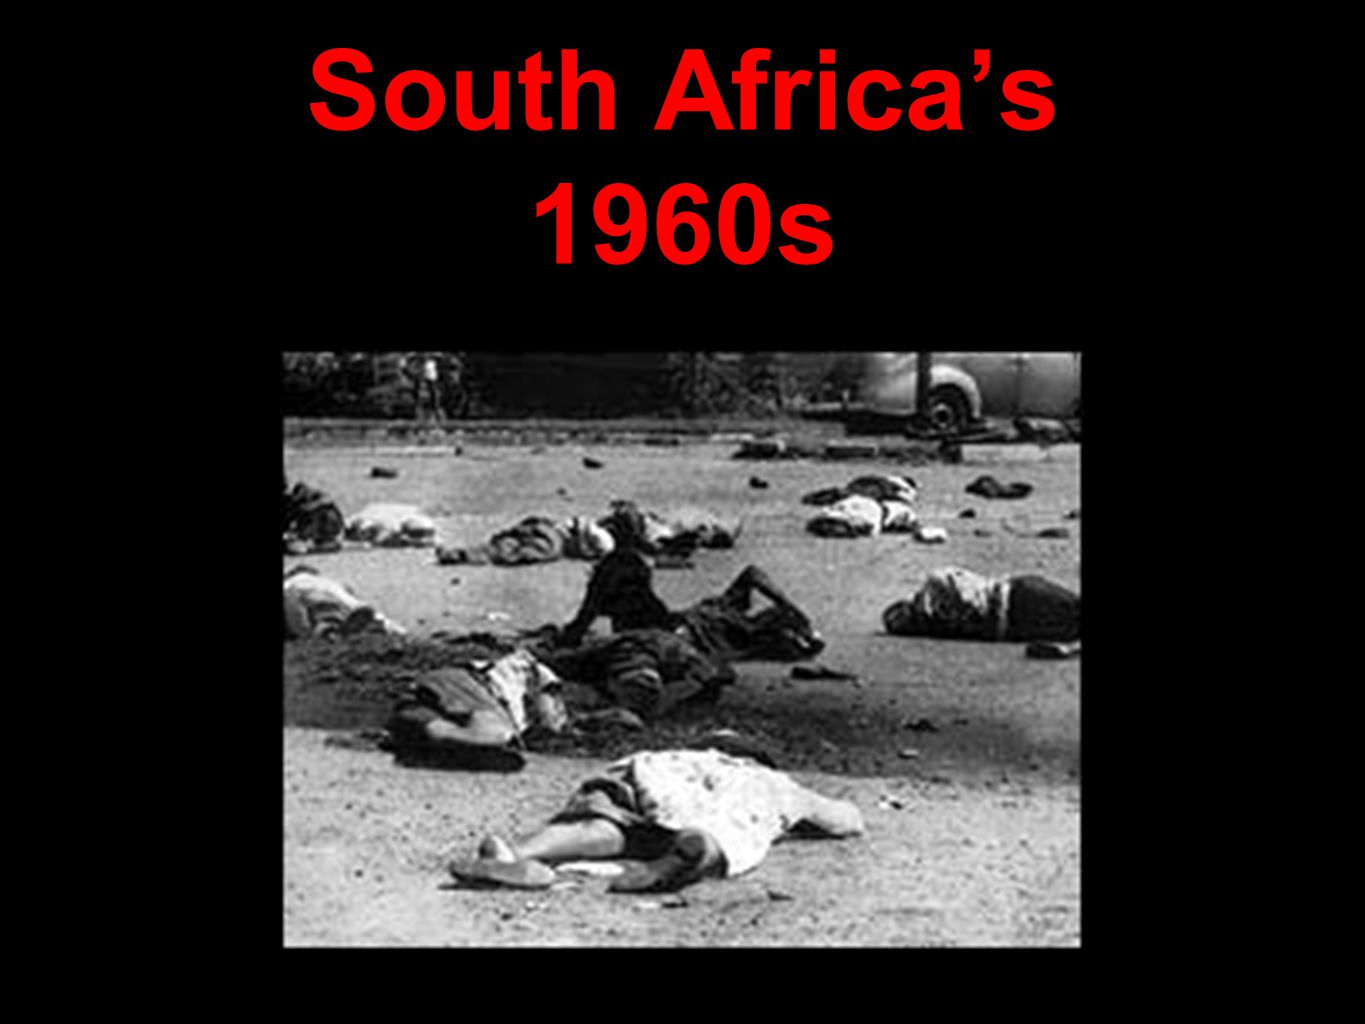 South Africa's 1960s